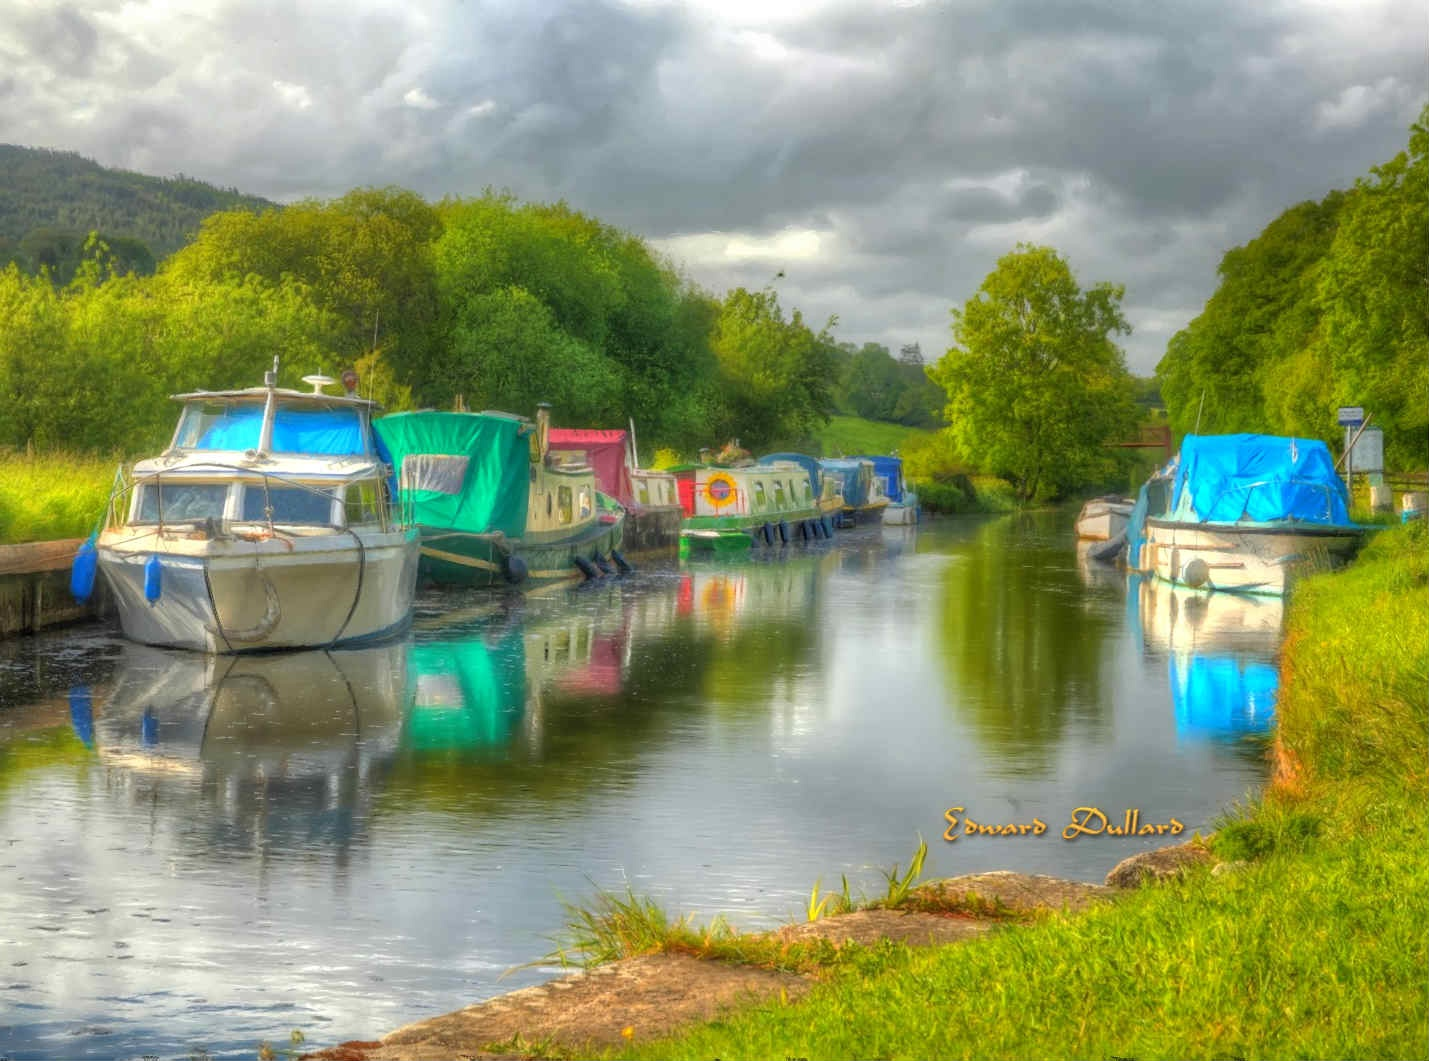 Boats and barges at rest. by EdwardDullard